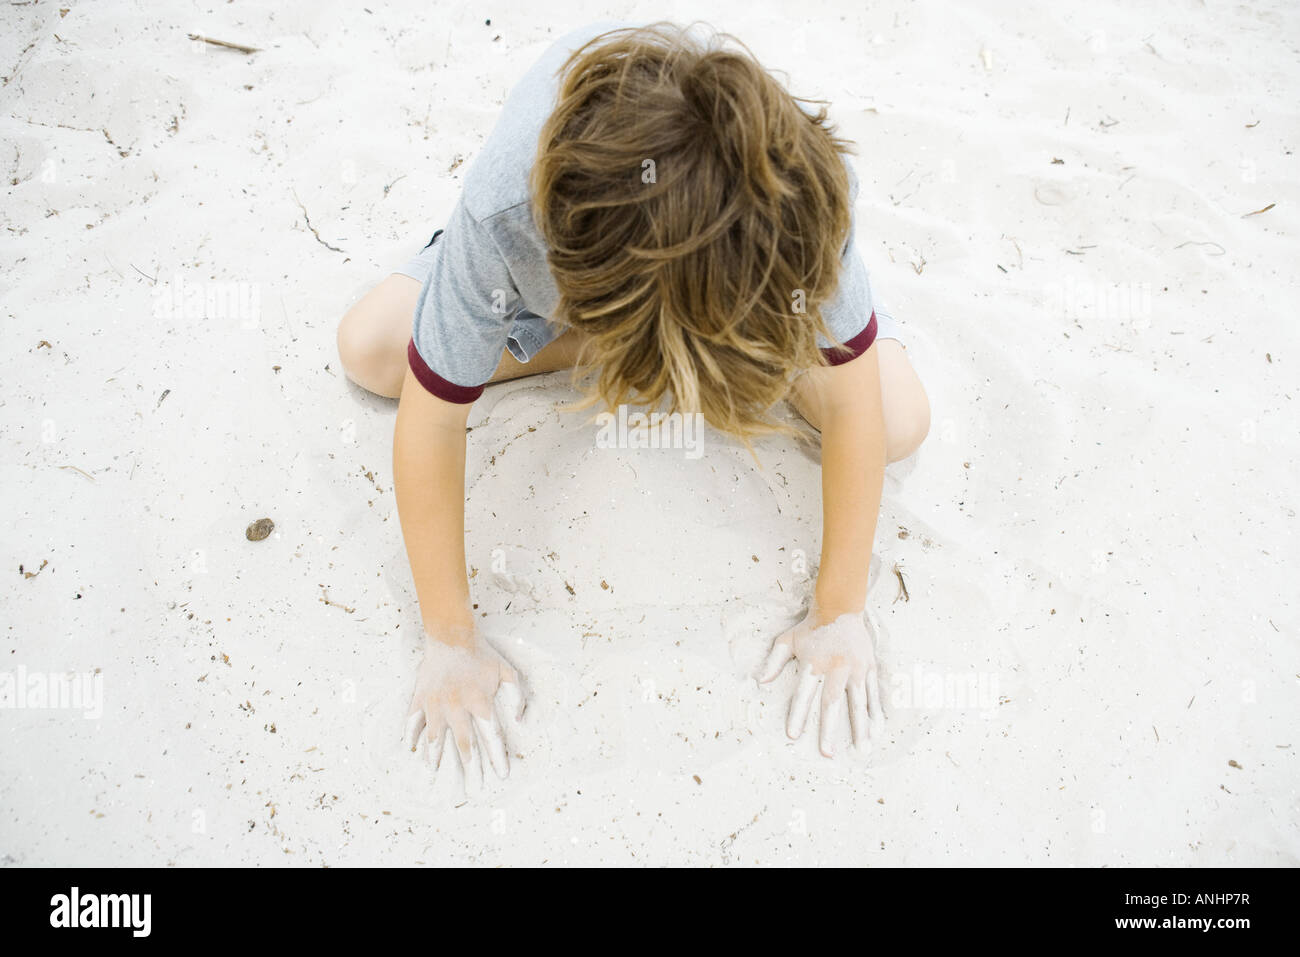 Boy crouching in sand, playing, high angle view - Stock Image